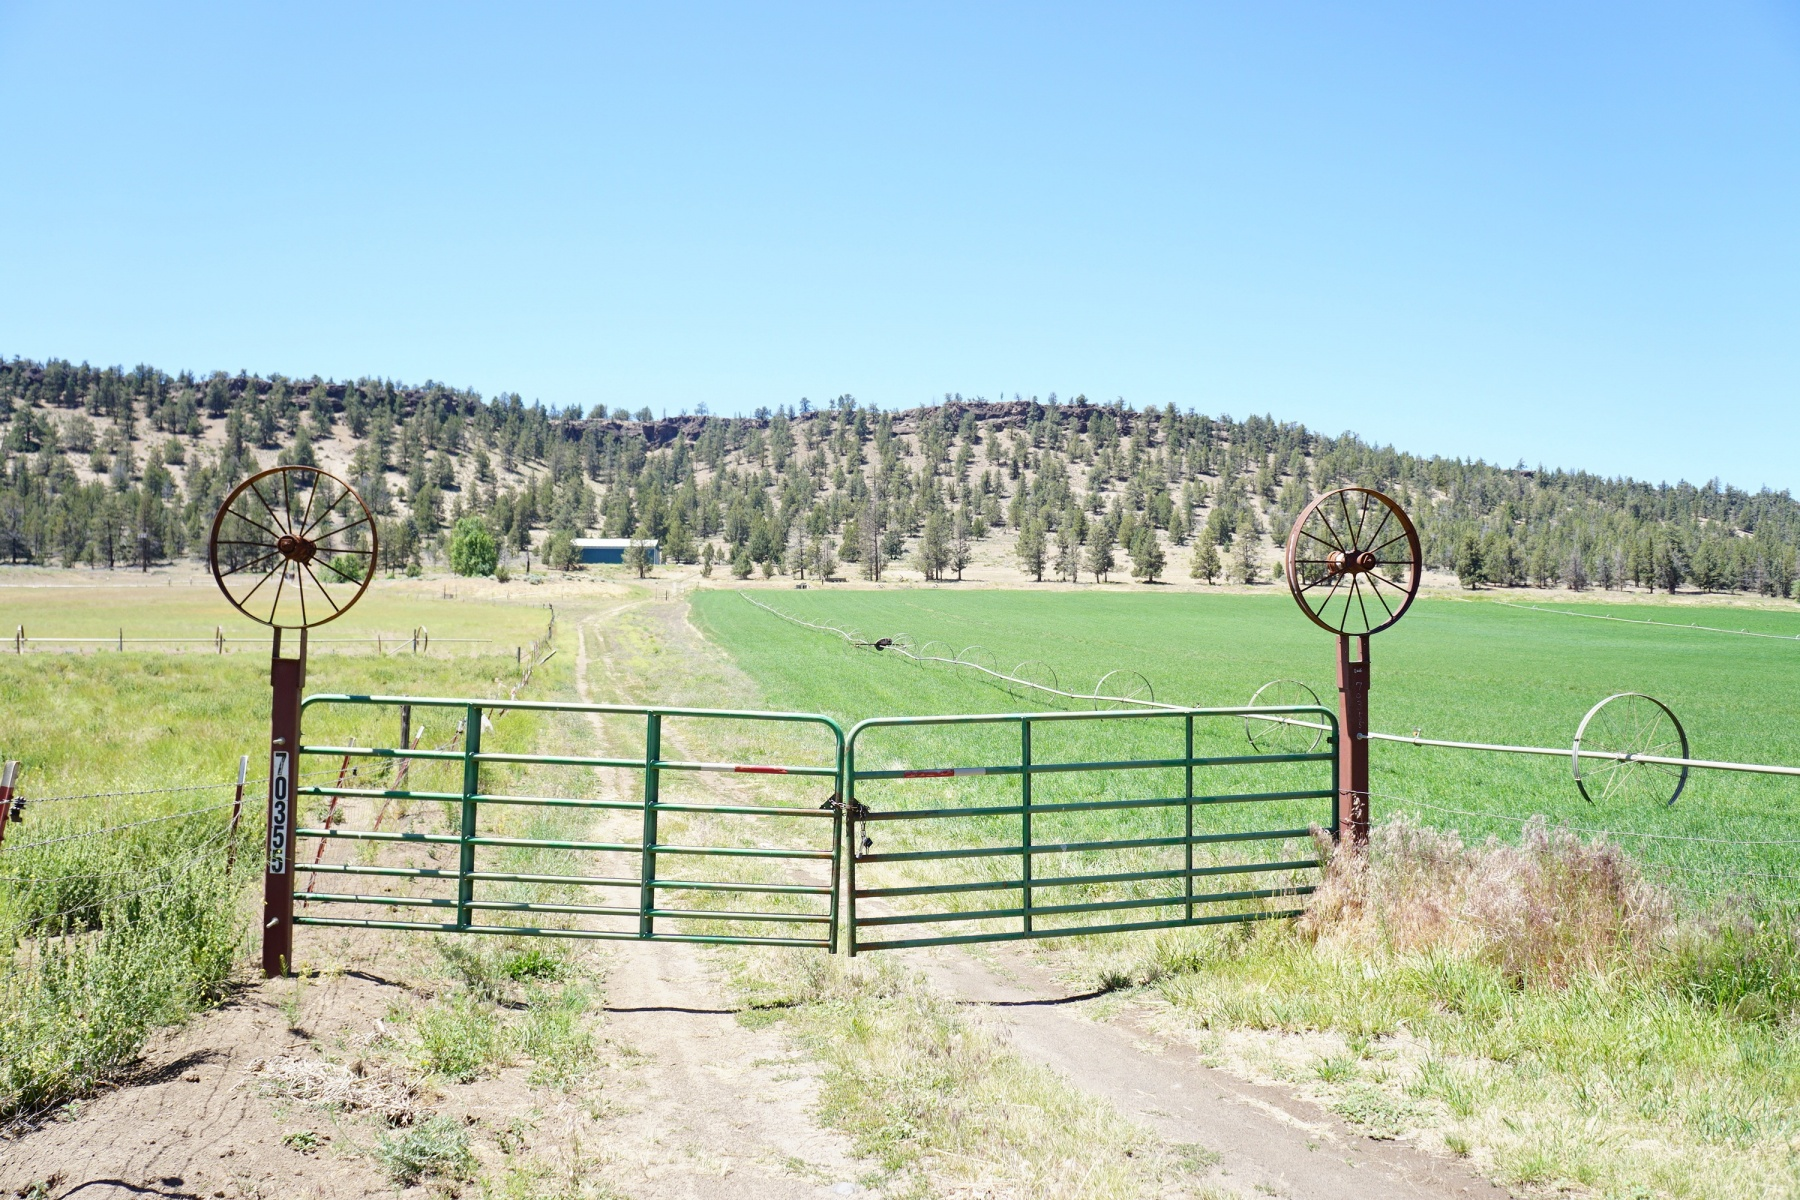 Land for Sale at 70355 McKenzie Canyon Road, TERREBONNE 70355 McKenzie Canyon Rd Terrebonne, Oregon, 97760 United States